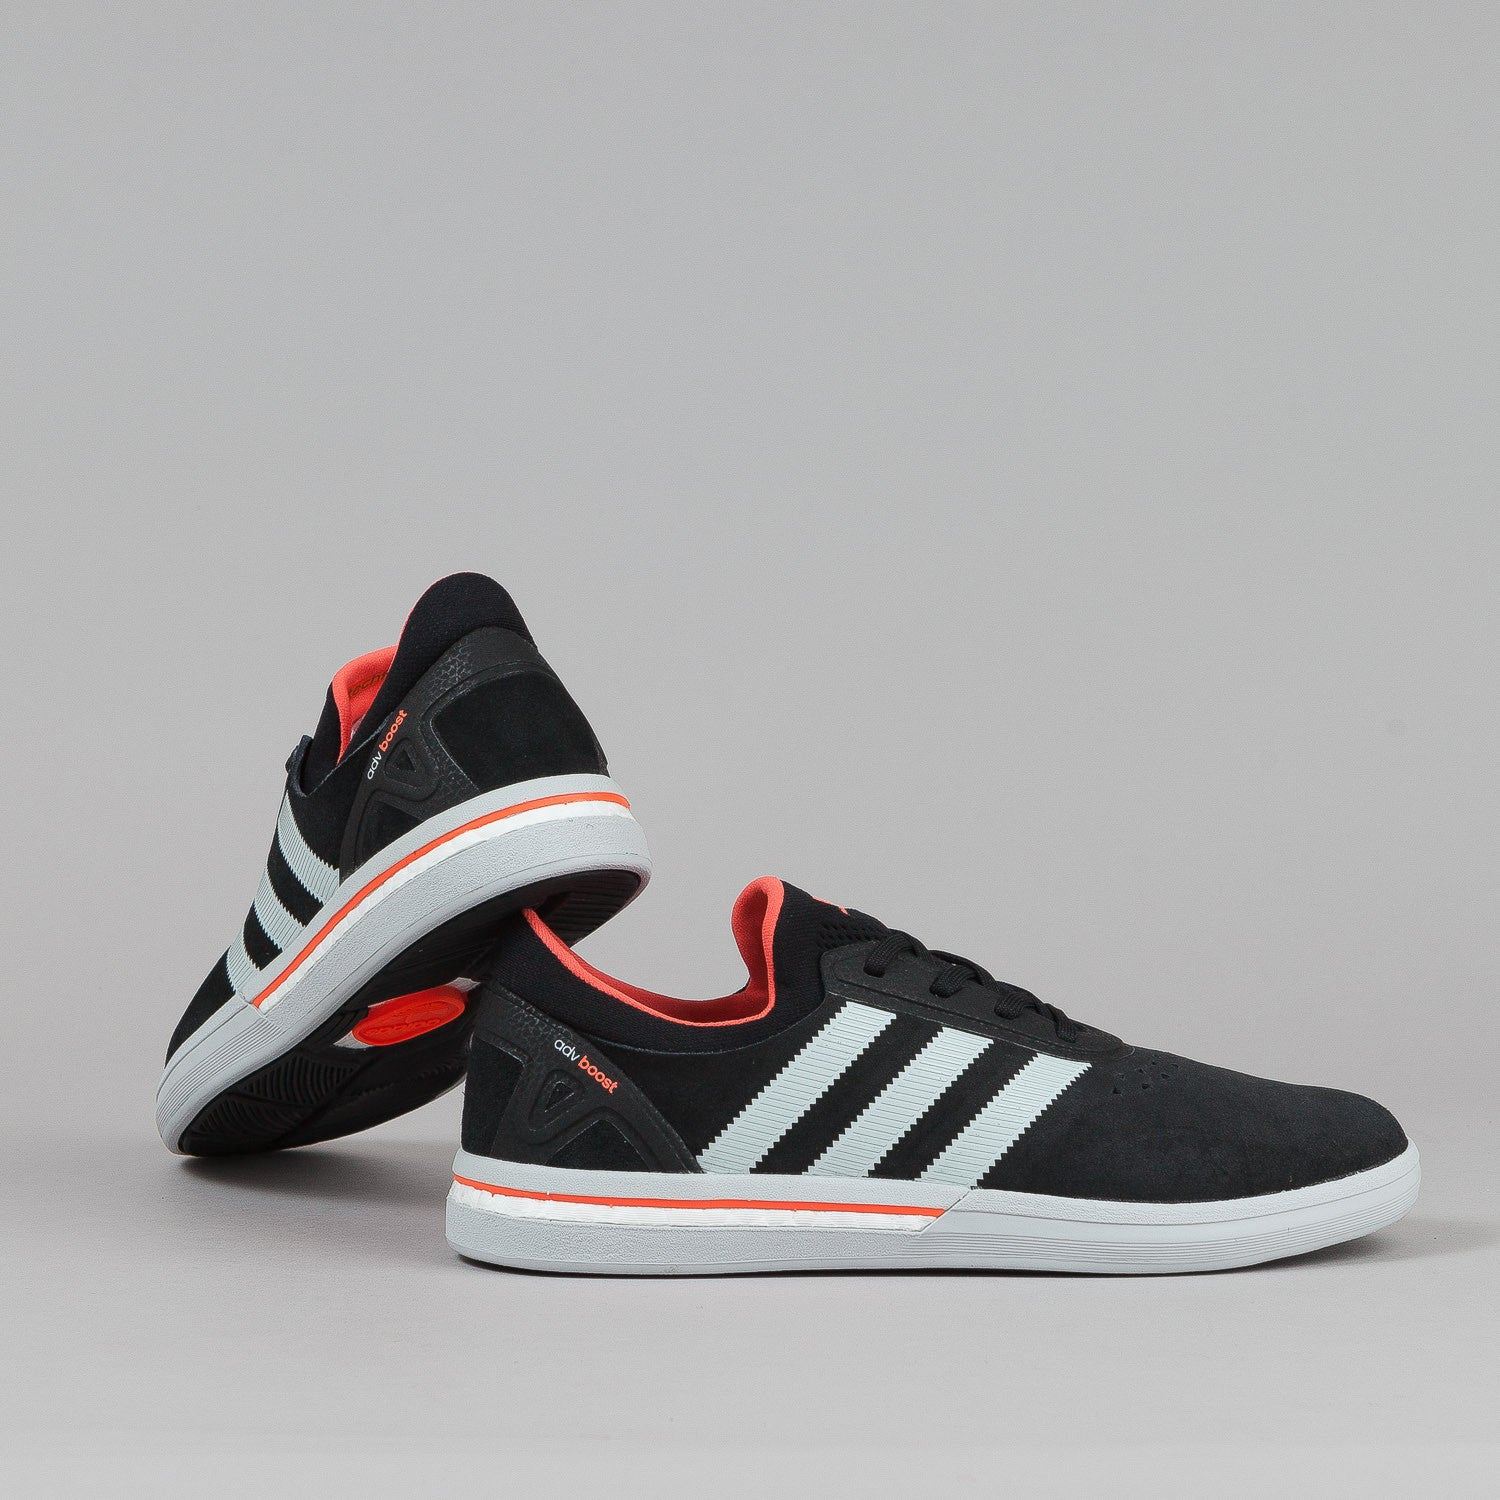 ... Adidas Adv Boost Shoes - Black / Grey / Red ...